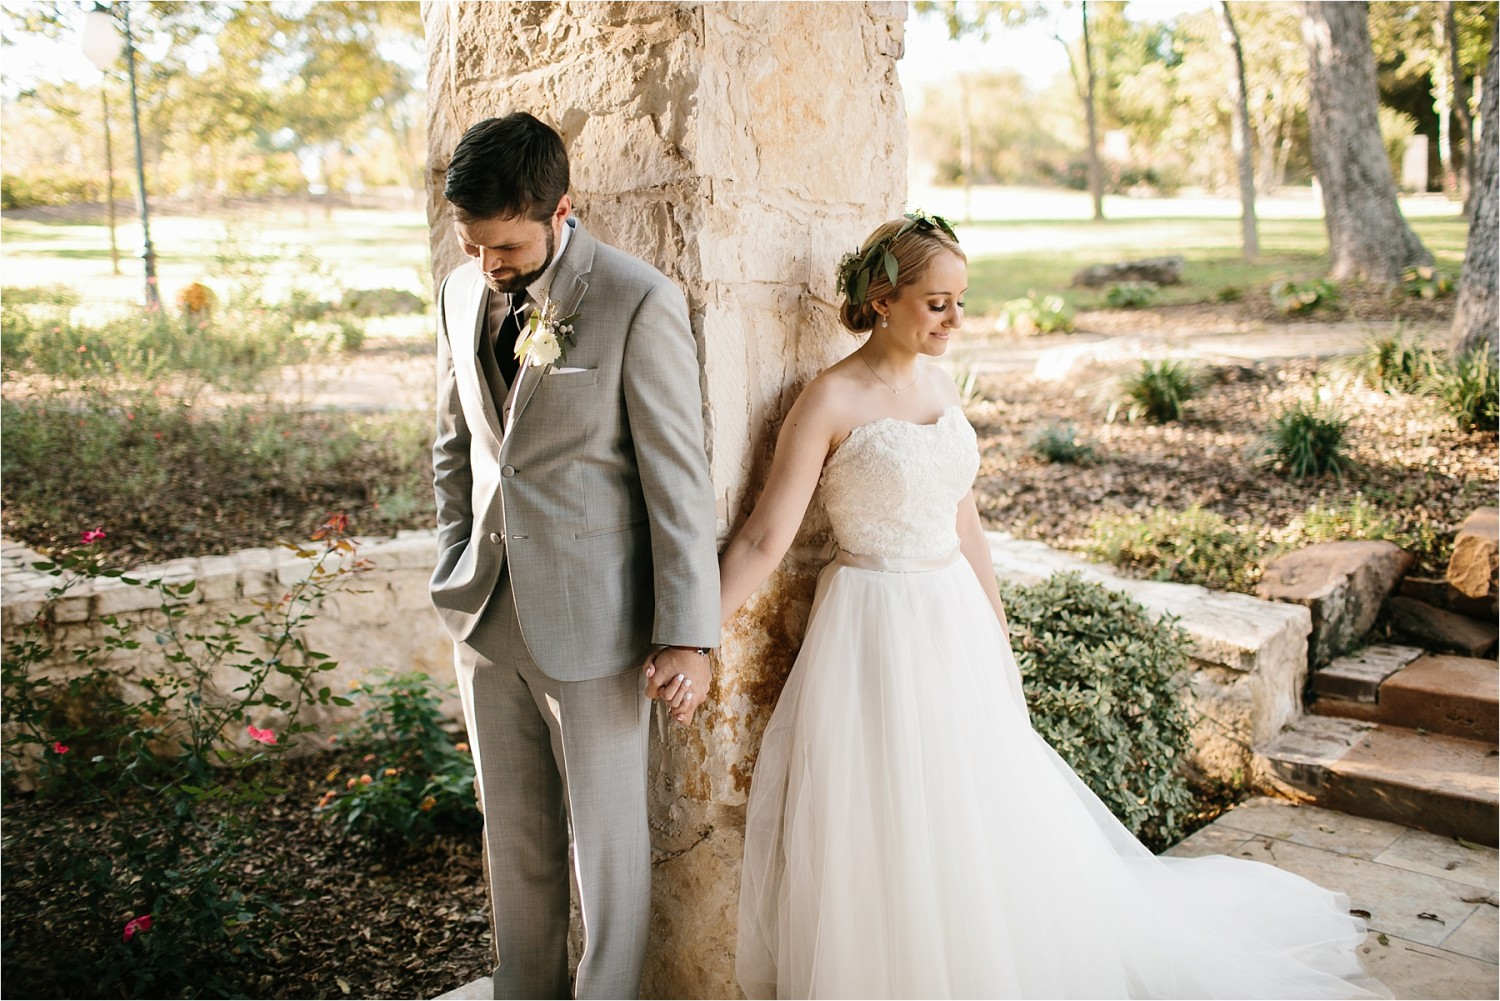 brad-lara-__-a-grey-and-blush-pink-intimate-wedding-at-hidden-waters-event-center-in-waxahachie-tx-by-north-texas-wedding-photographer-rachel-meagan-photography-_-035